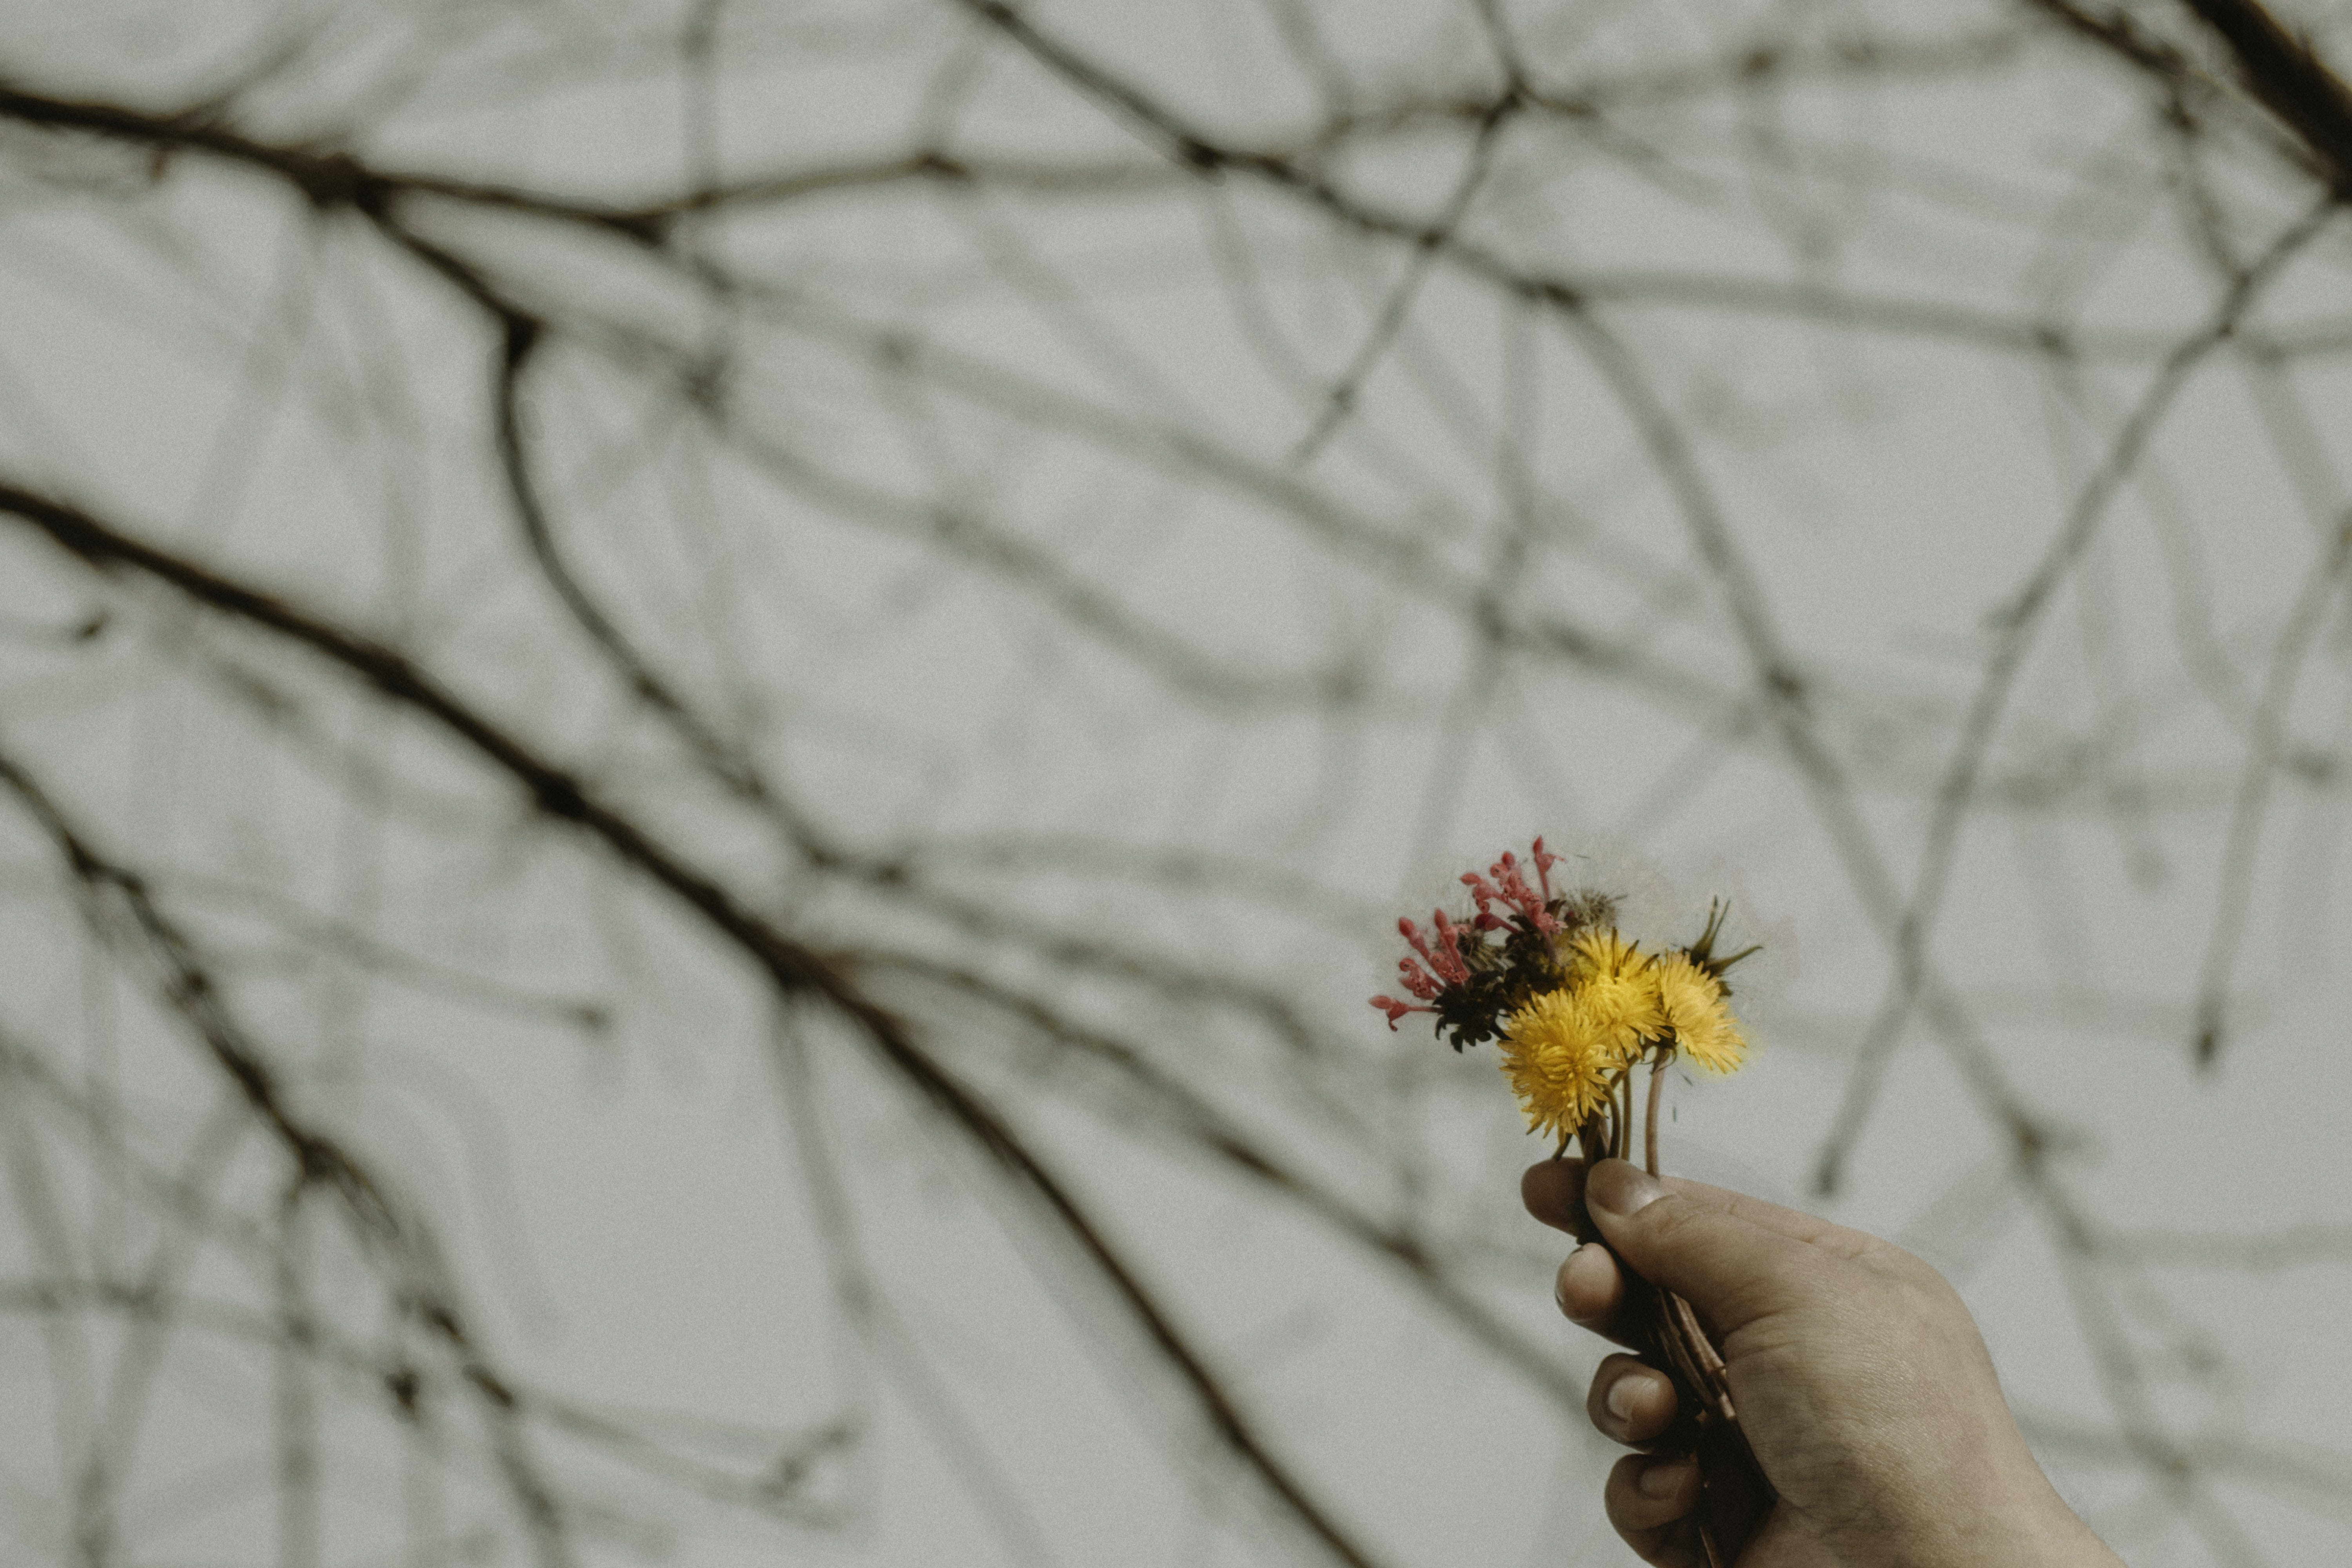 Free stock photo of fall, flower, hand, hold